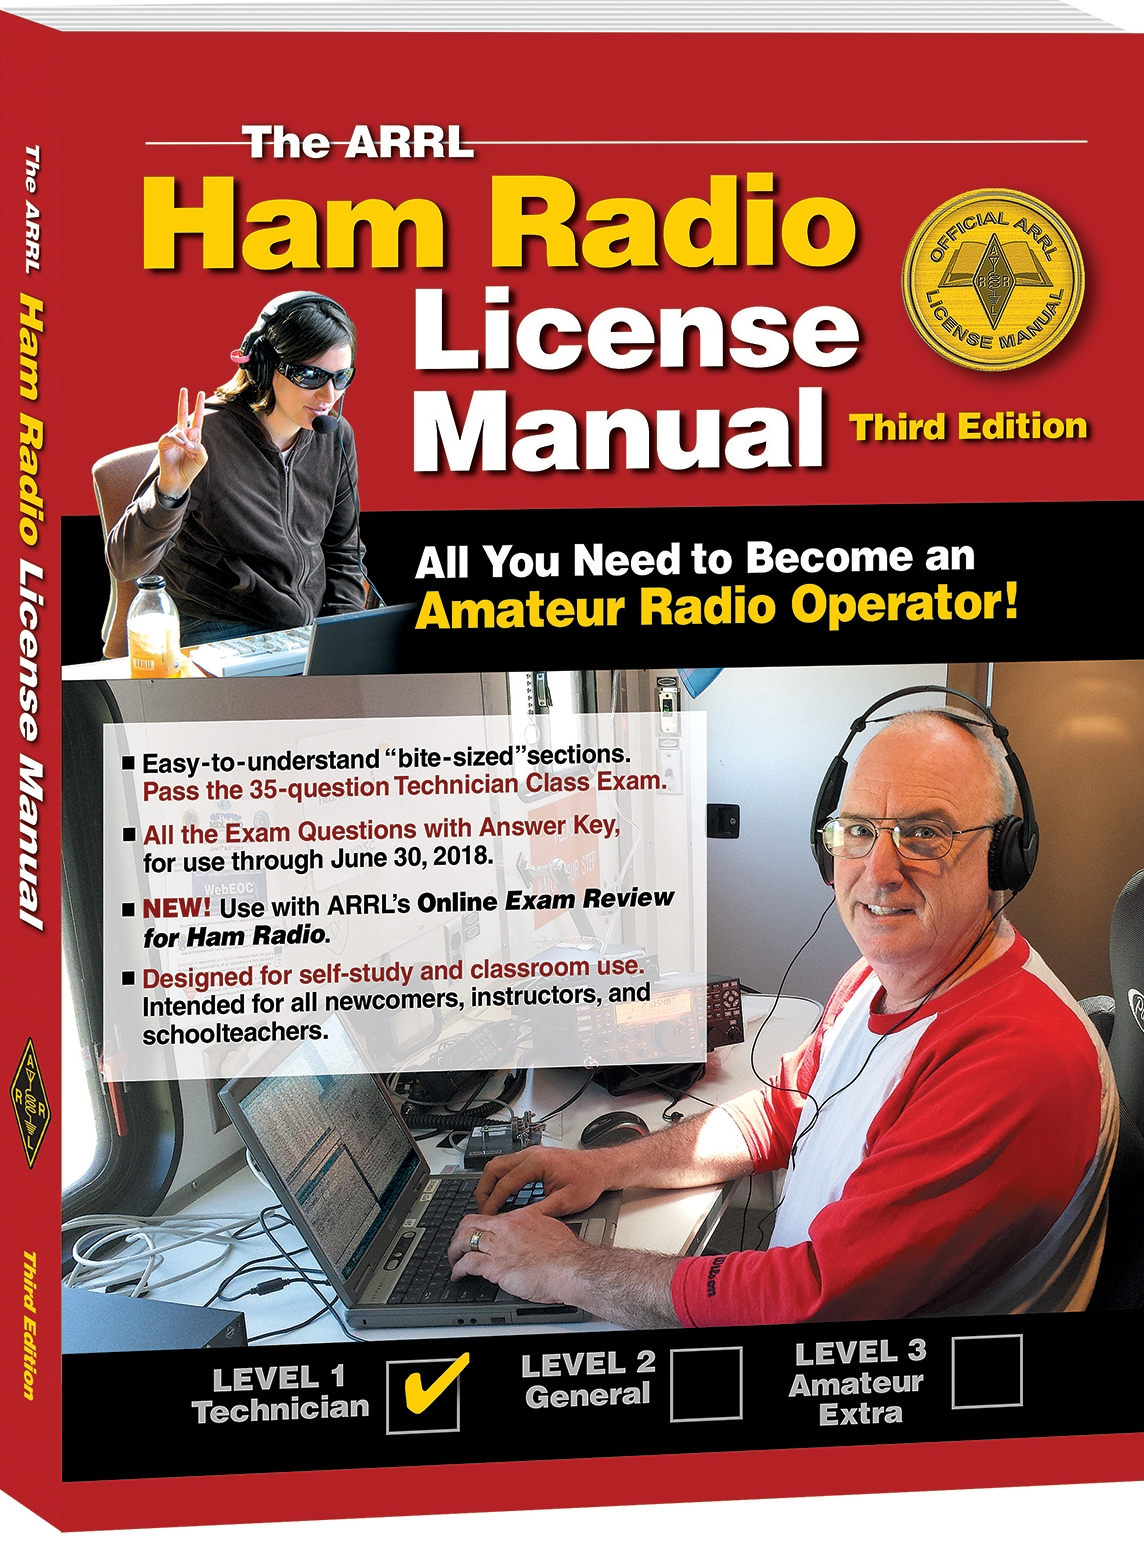 arrl introduces kindle edition of ham radio license manual rh arrl org arrl ham radio license manual 4th edition pdf arrl ham radio license manual 4th edition (spiral bound)